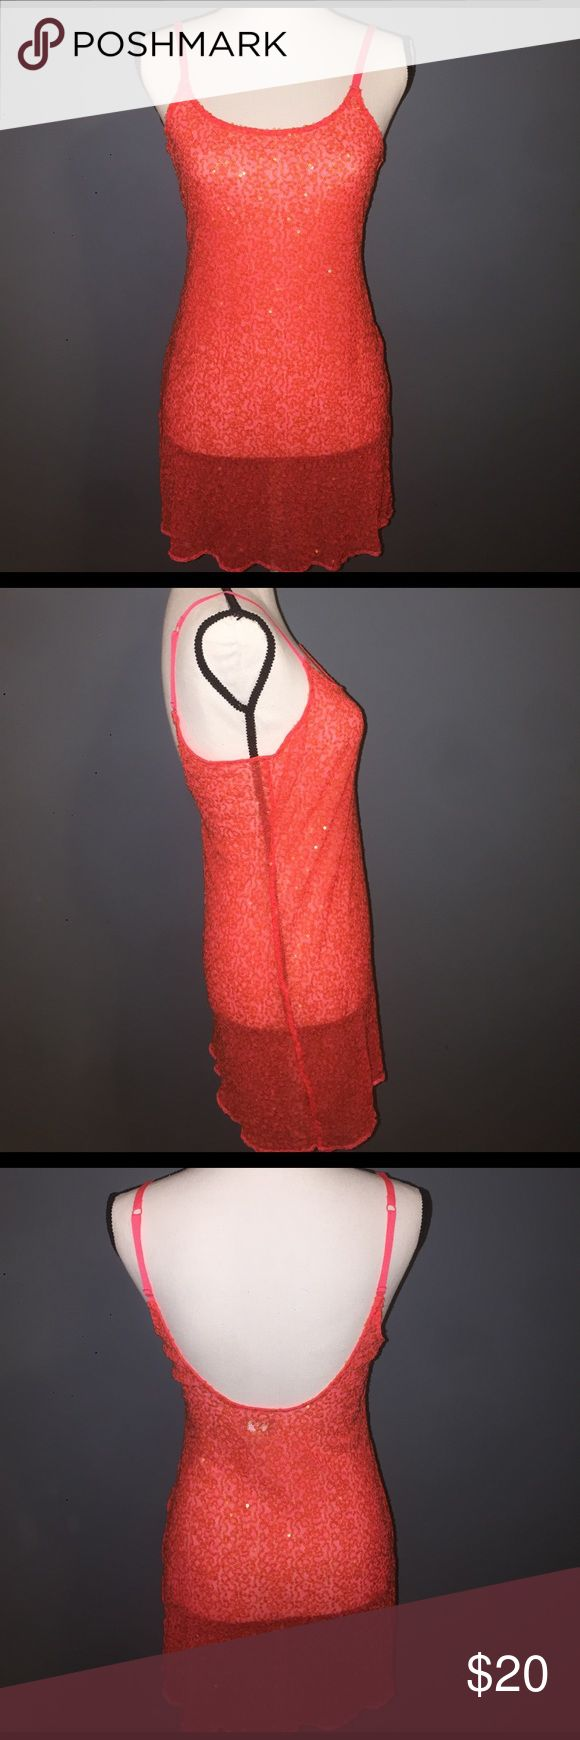 Intamitely Free People sequence dress Free People (Intamitely Free People) sequence dress with adjustable straps. Super sexy and fun! Size small Free People Dresses